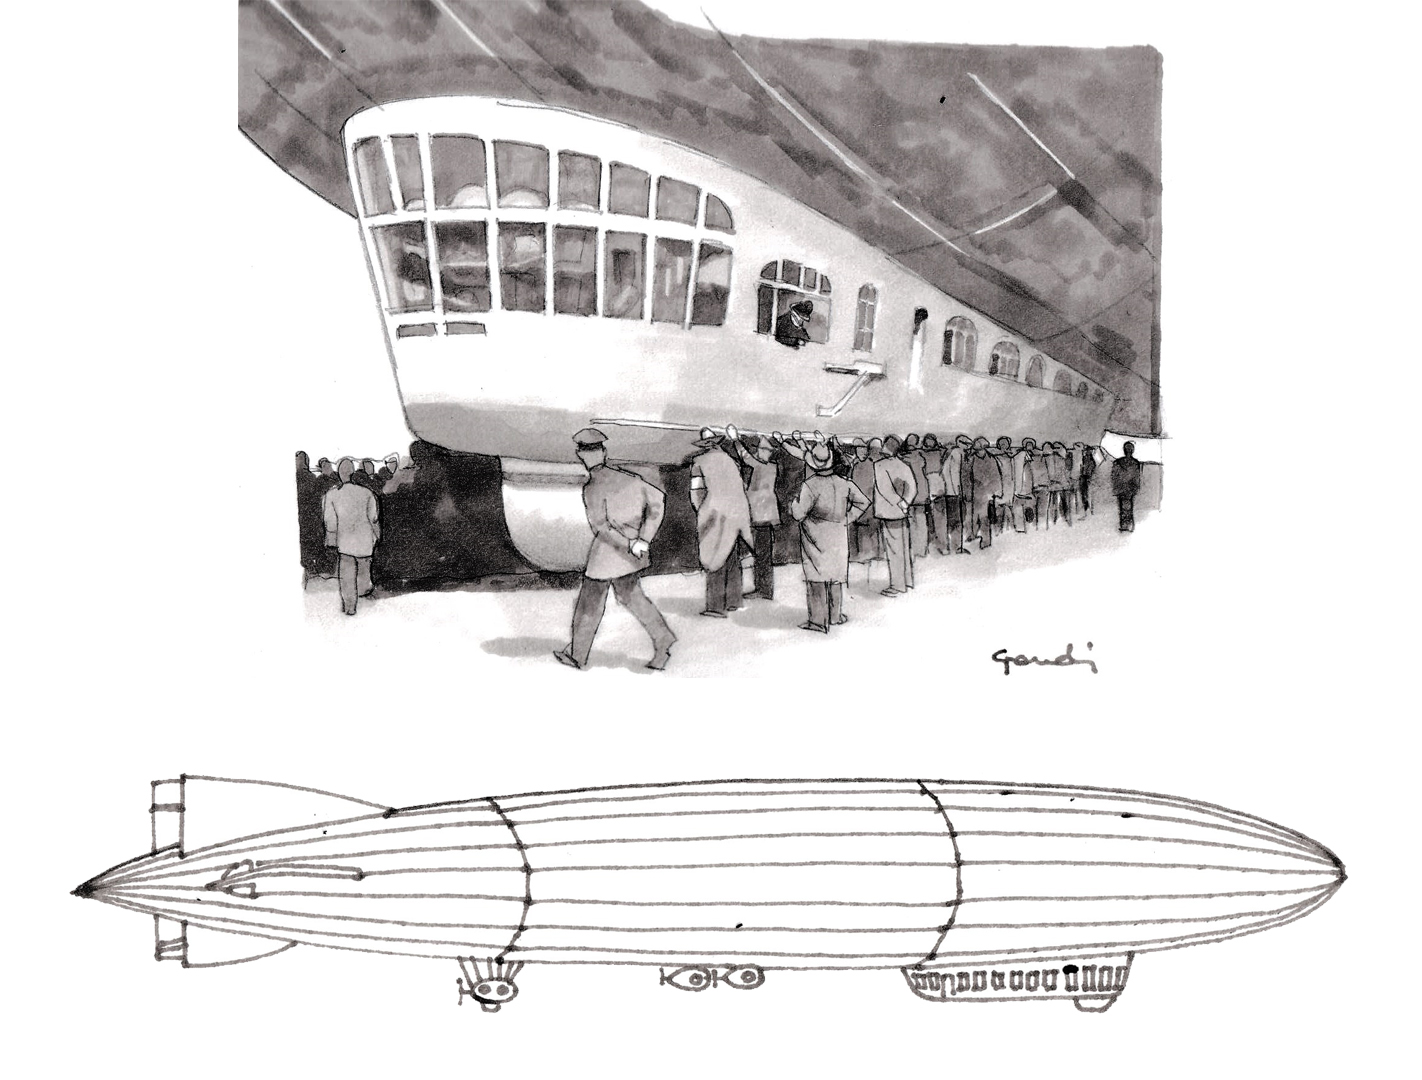 Jaray's work in the Zeppelin wind tunnel led to aerodynamic solutions for road cars